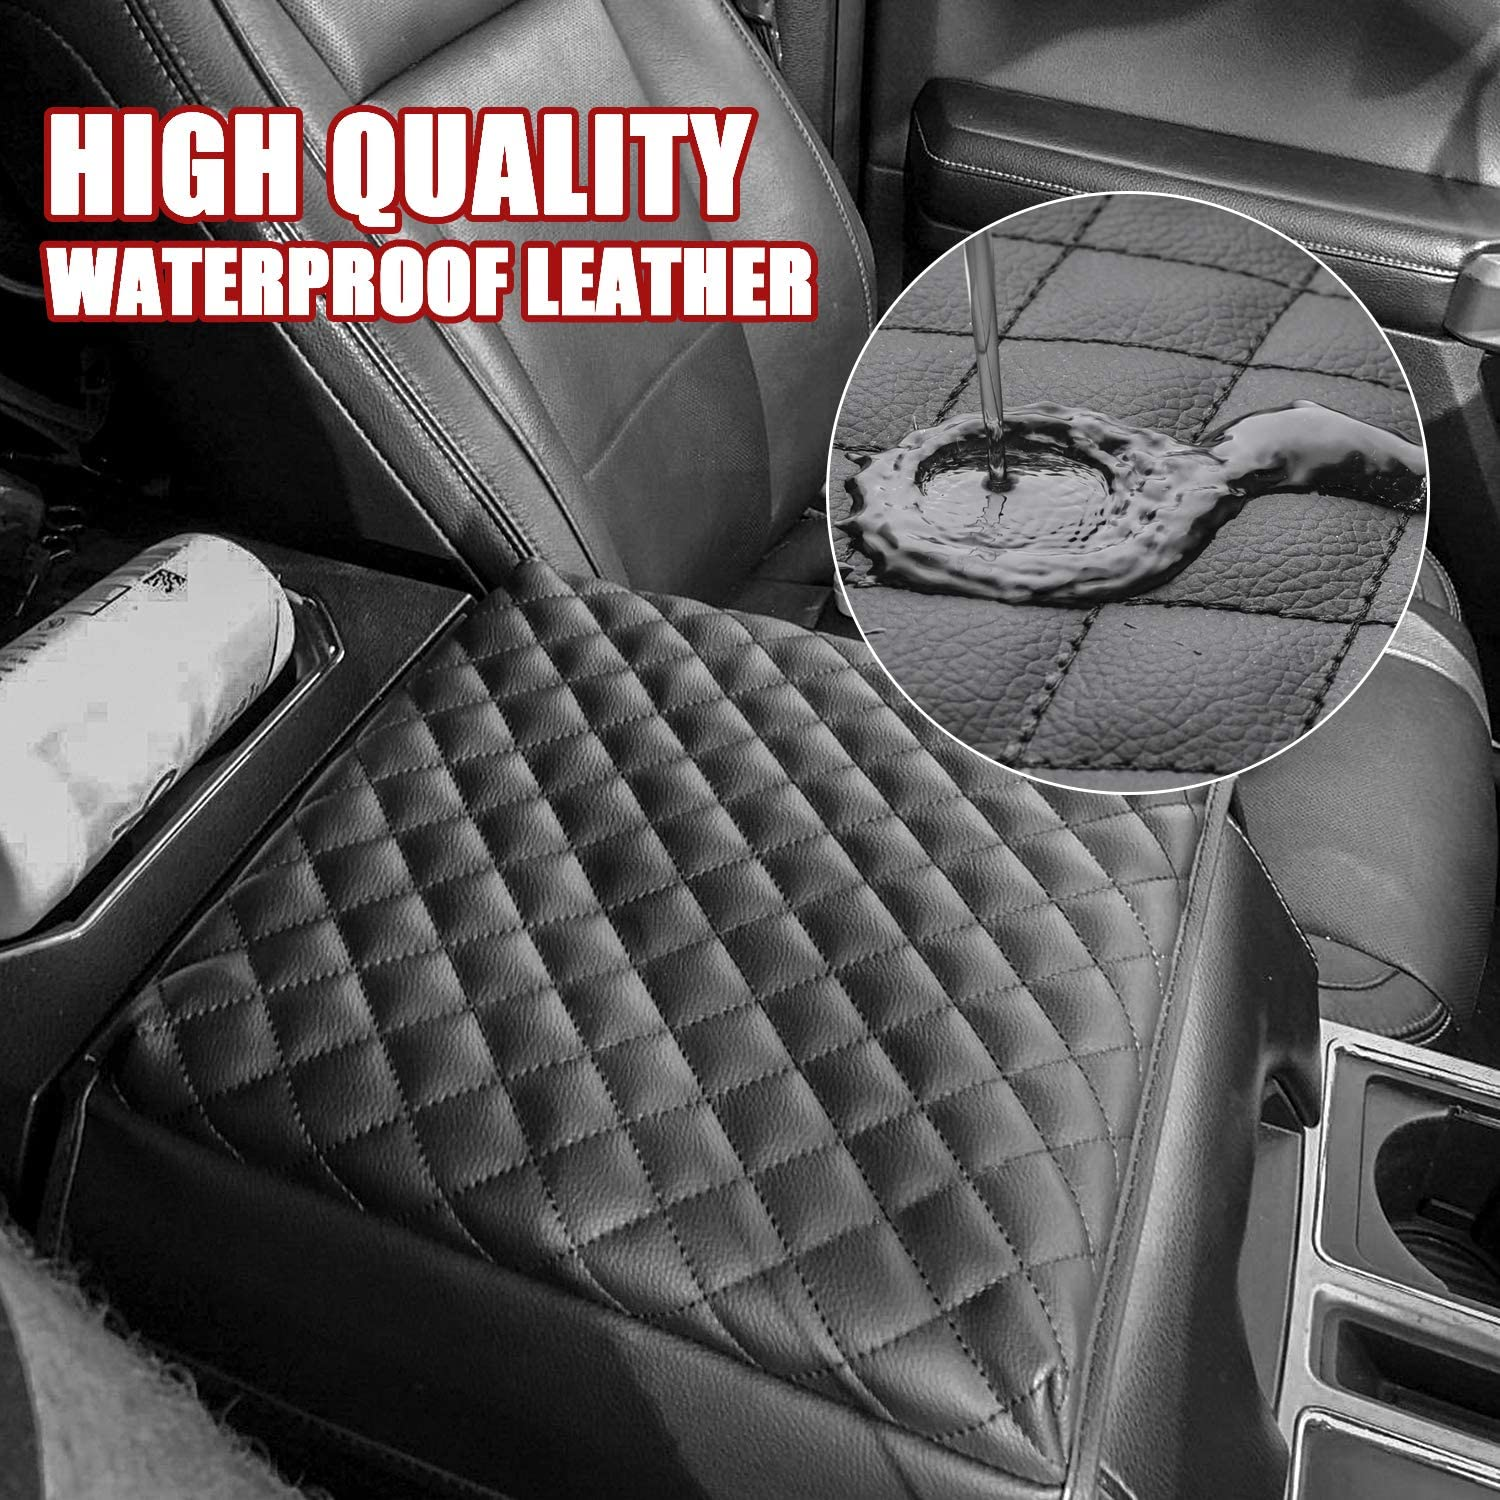 Seven Sparta Console Armrest Cushion Compatible with Ford F150 SUVs 2015-2020 Leather Waterproof Console Cover Protector